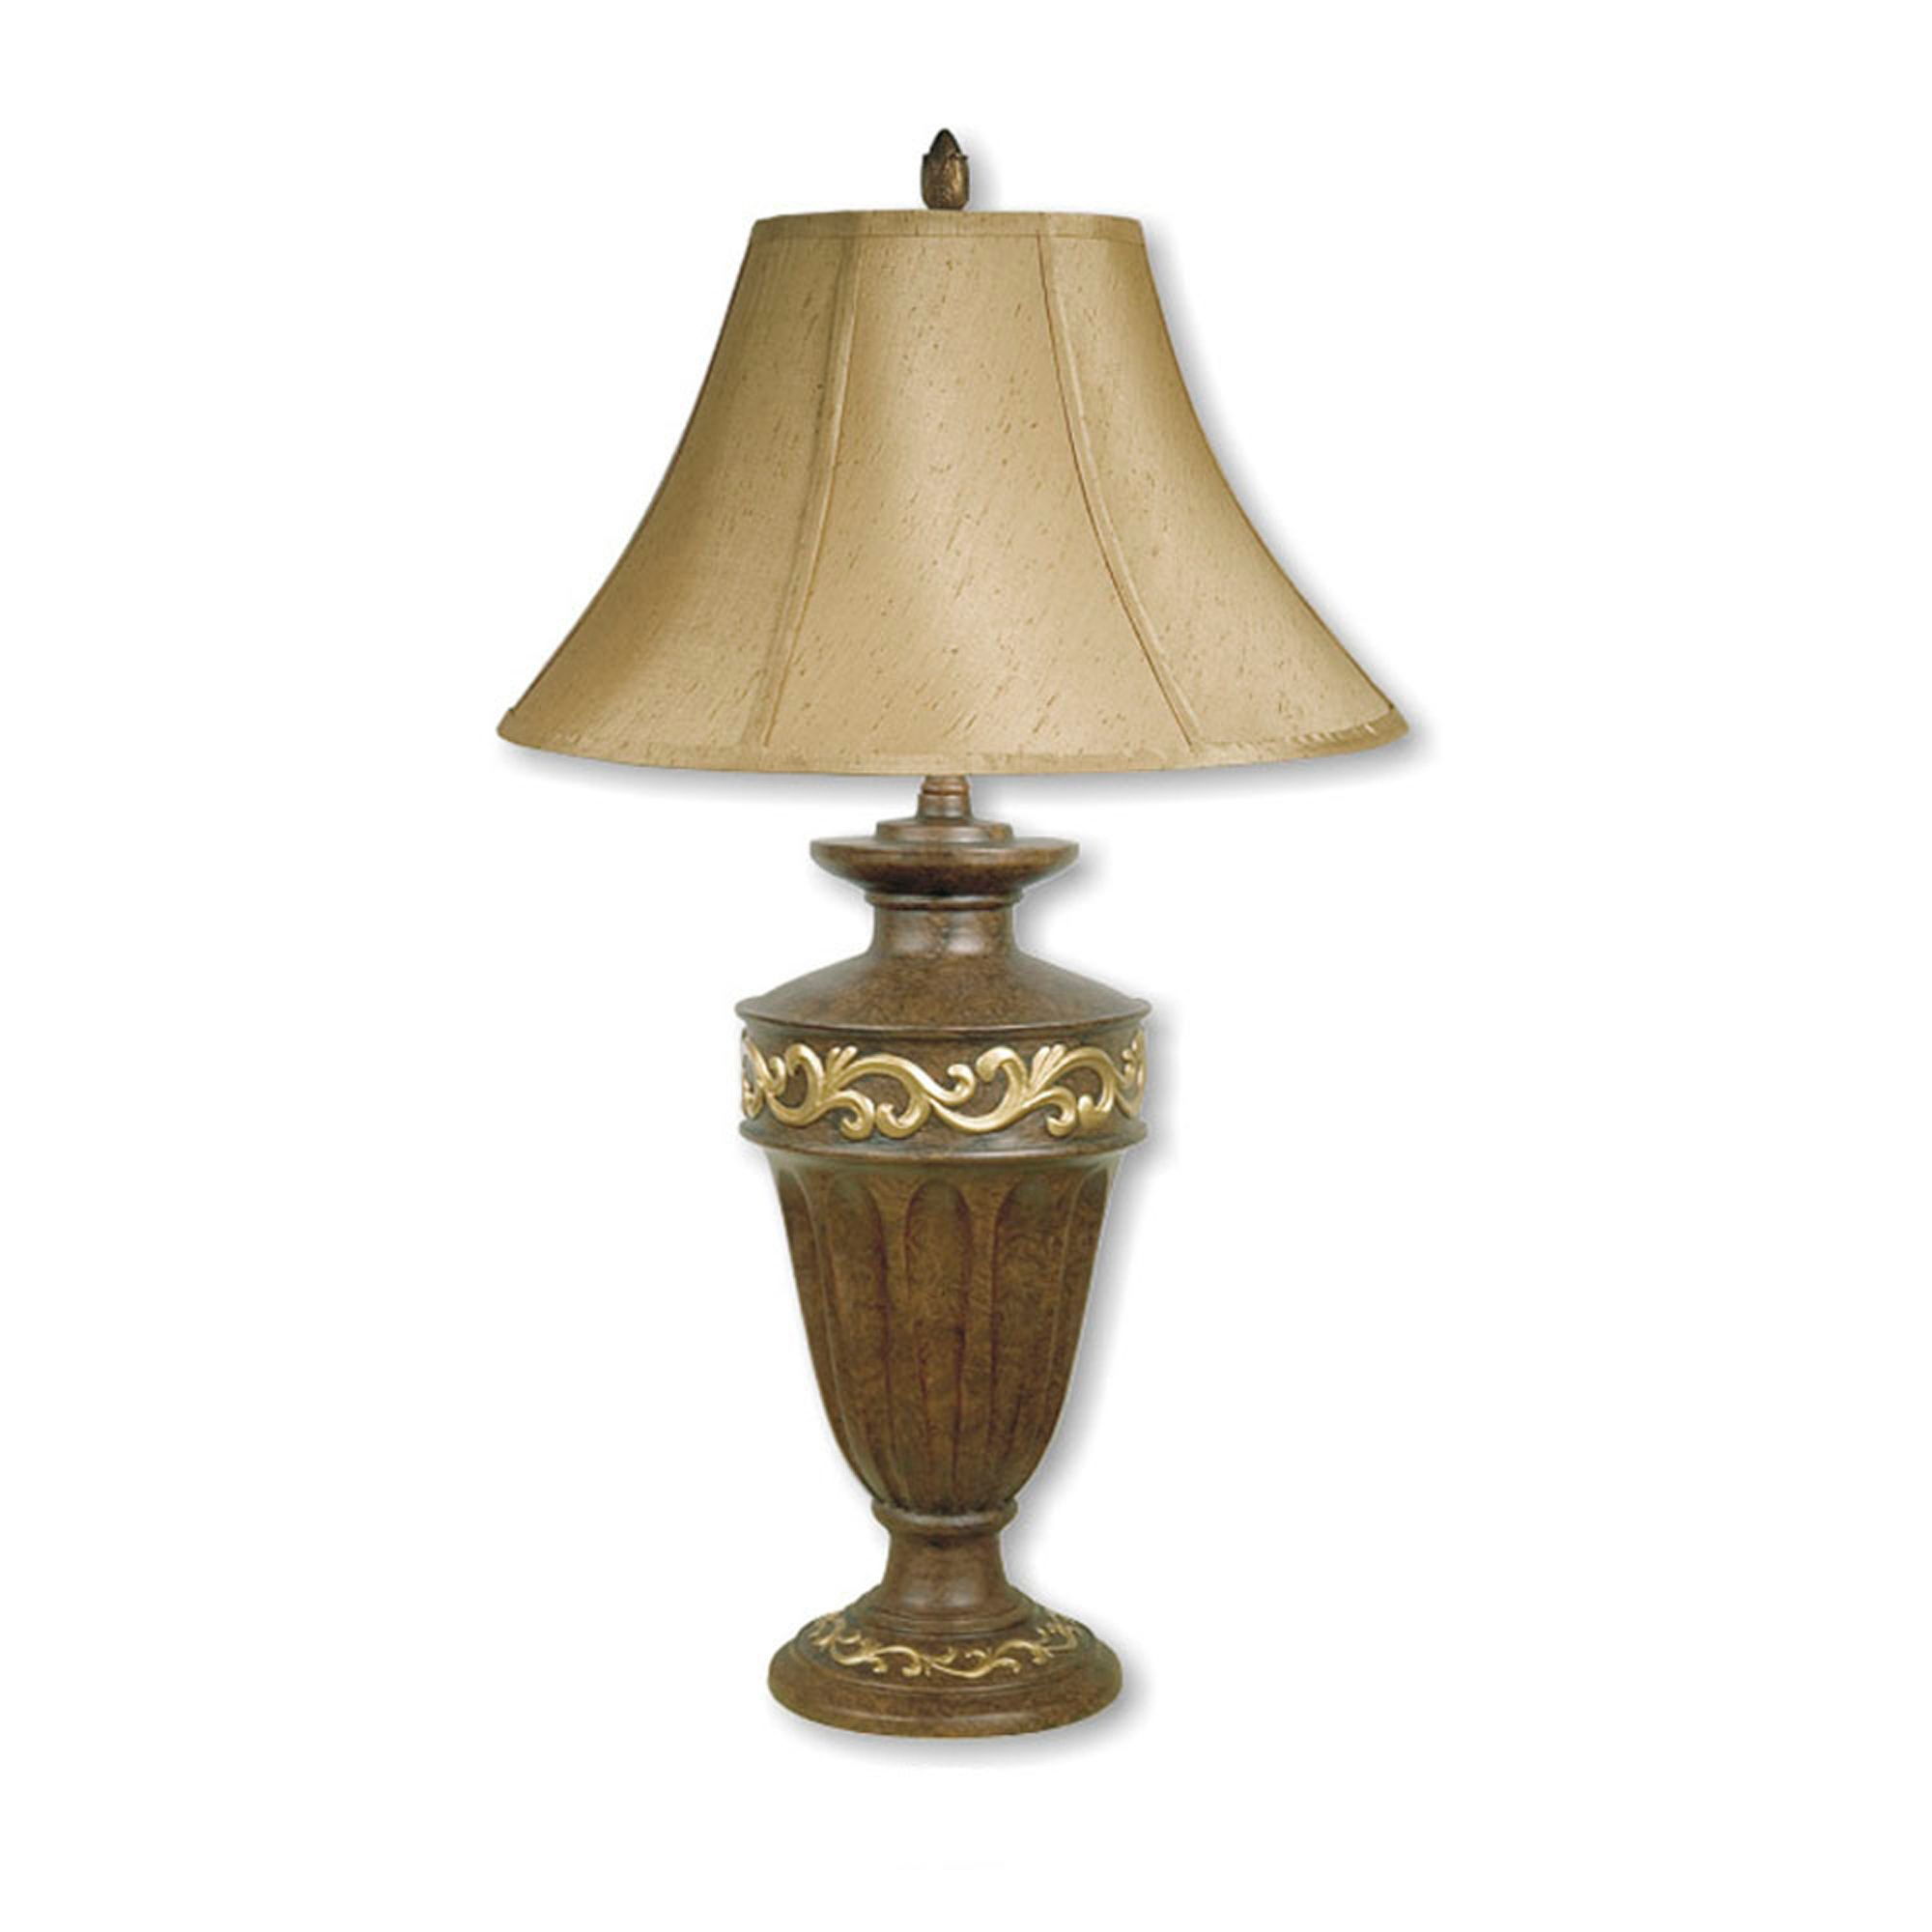 Table Lamp Antique Finish Luxurious Lighting Sears And